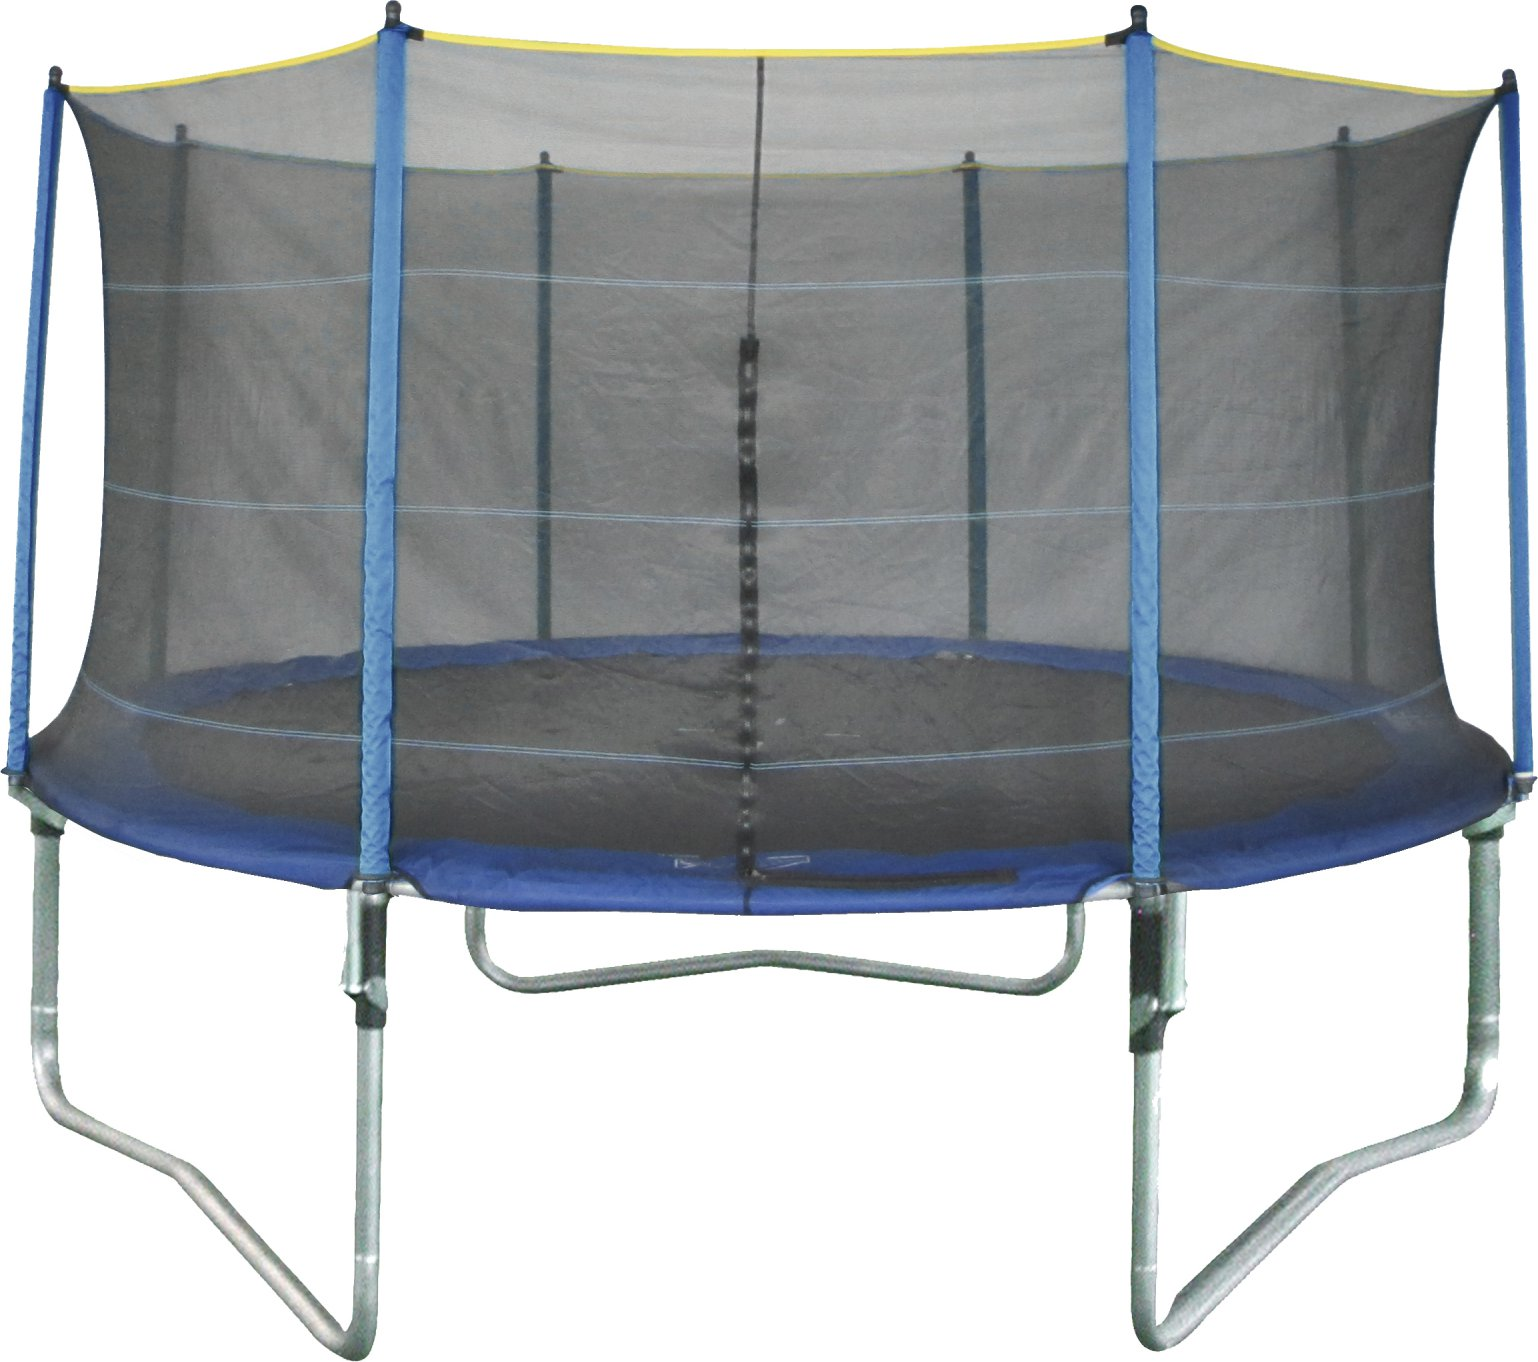 Trampoline Net Kopen Game On Sport Mega Flash Trampoline 305 43 Net Kopen Frank